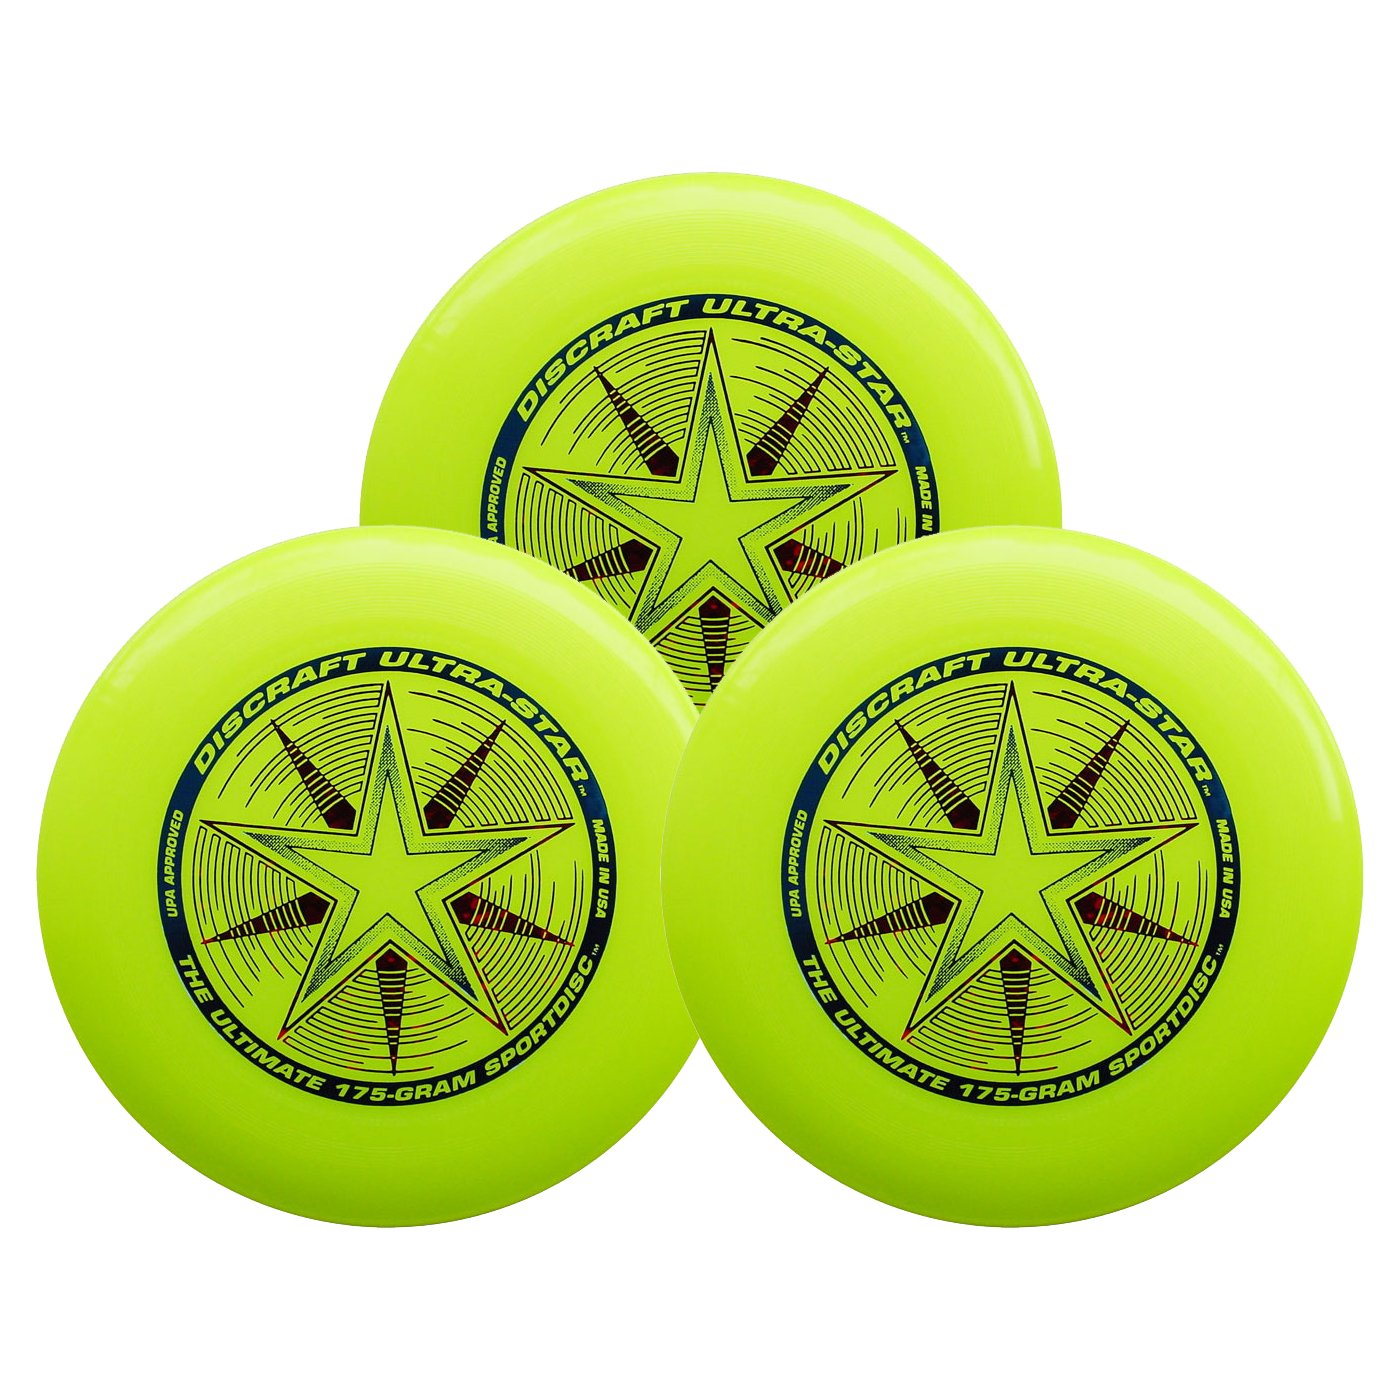 Discraft Ultra-Star 175g Ultimate Sportdisc Yellow (3 Pack) by Discraft